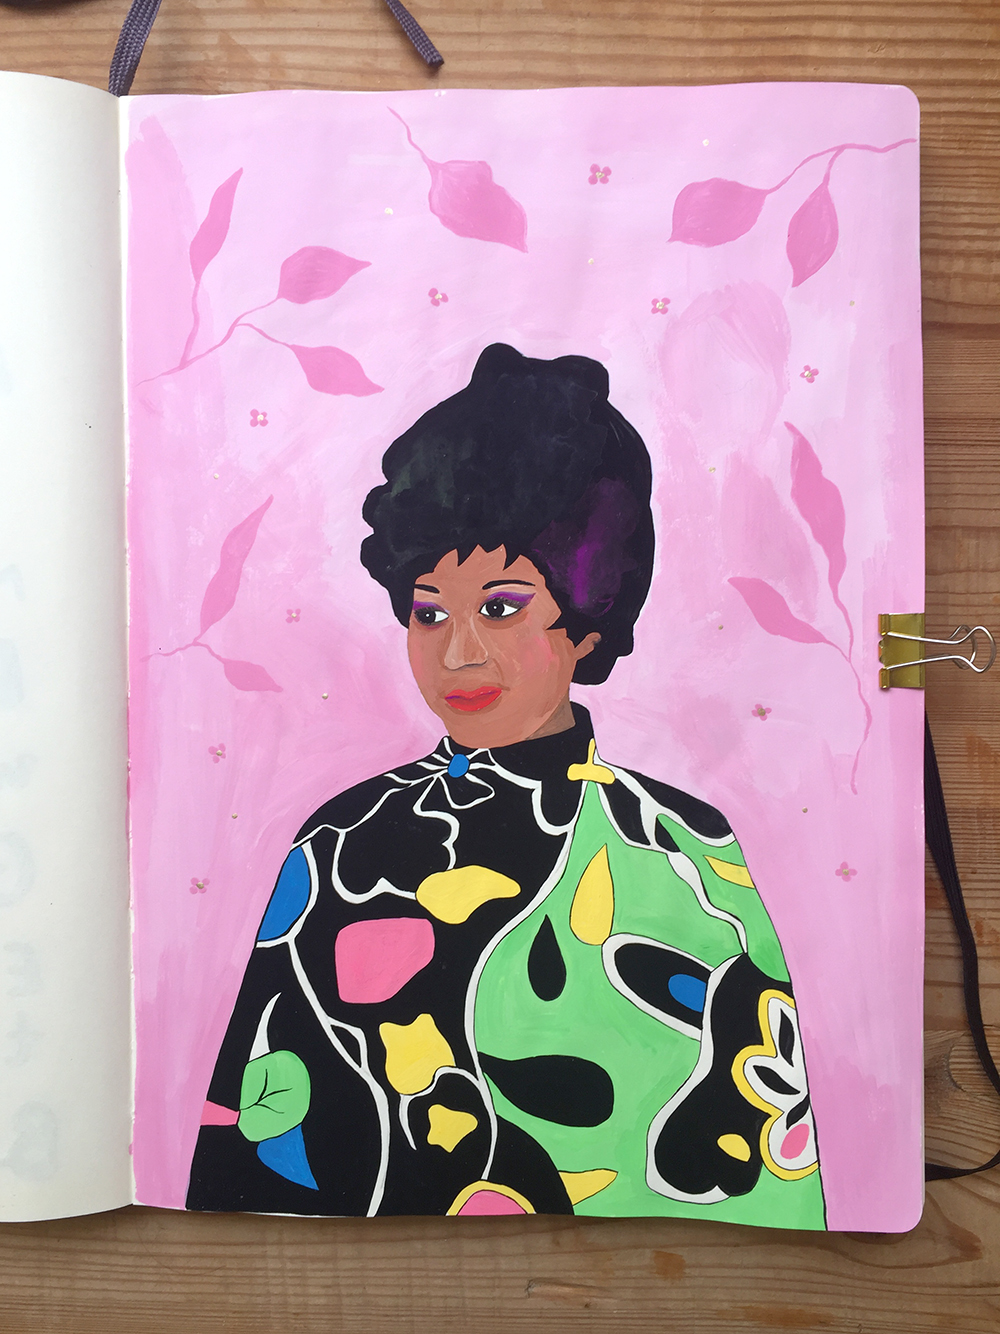 Aretha Franklin illustration by Marenthe